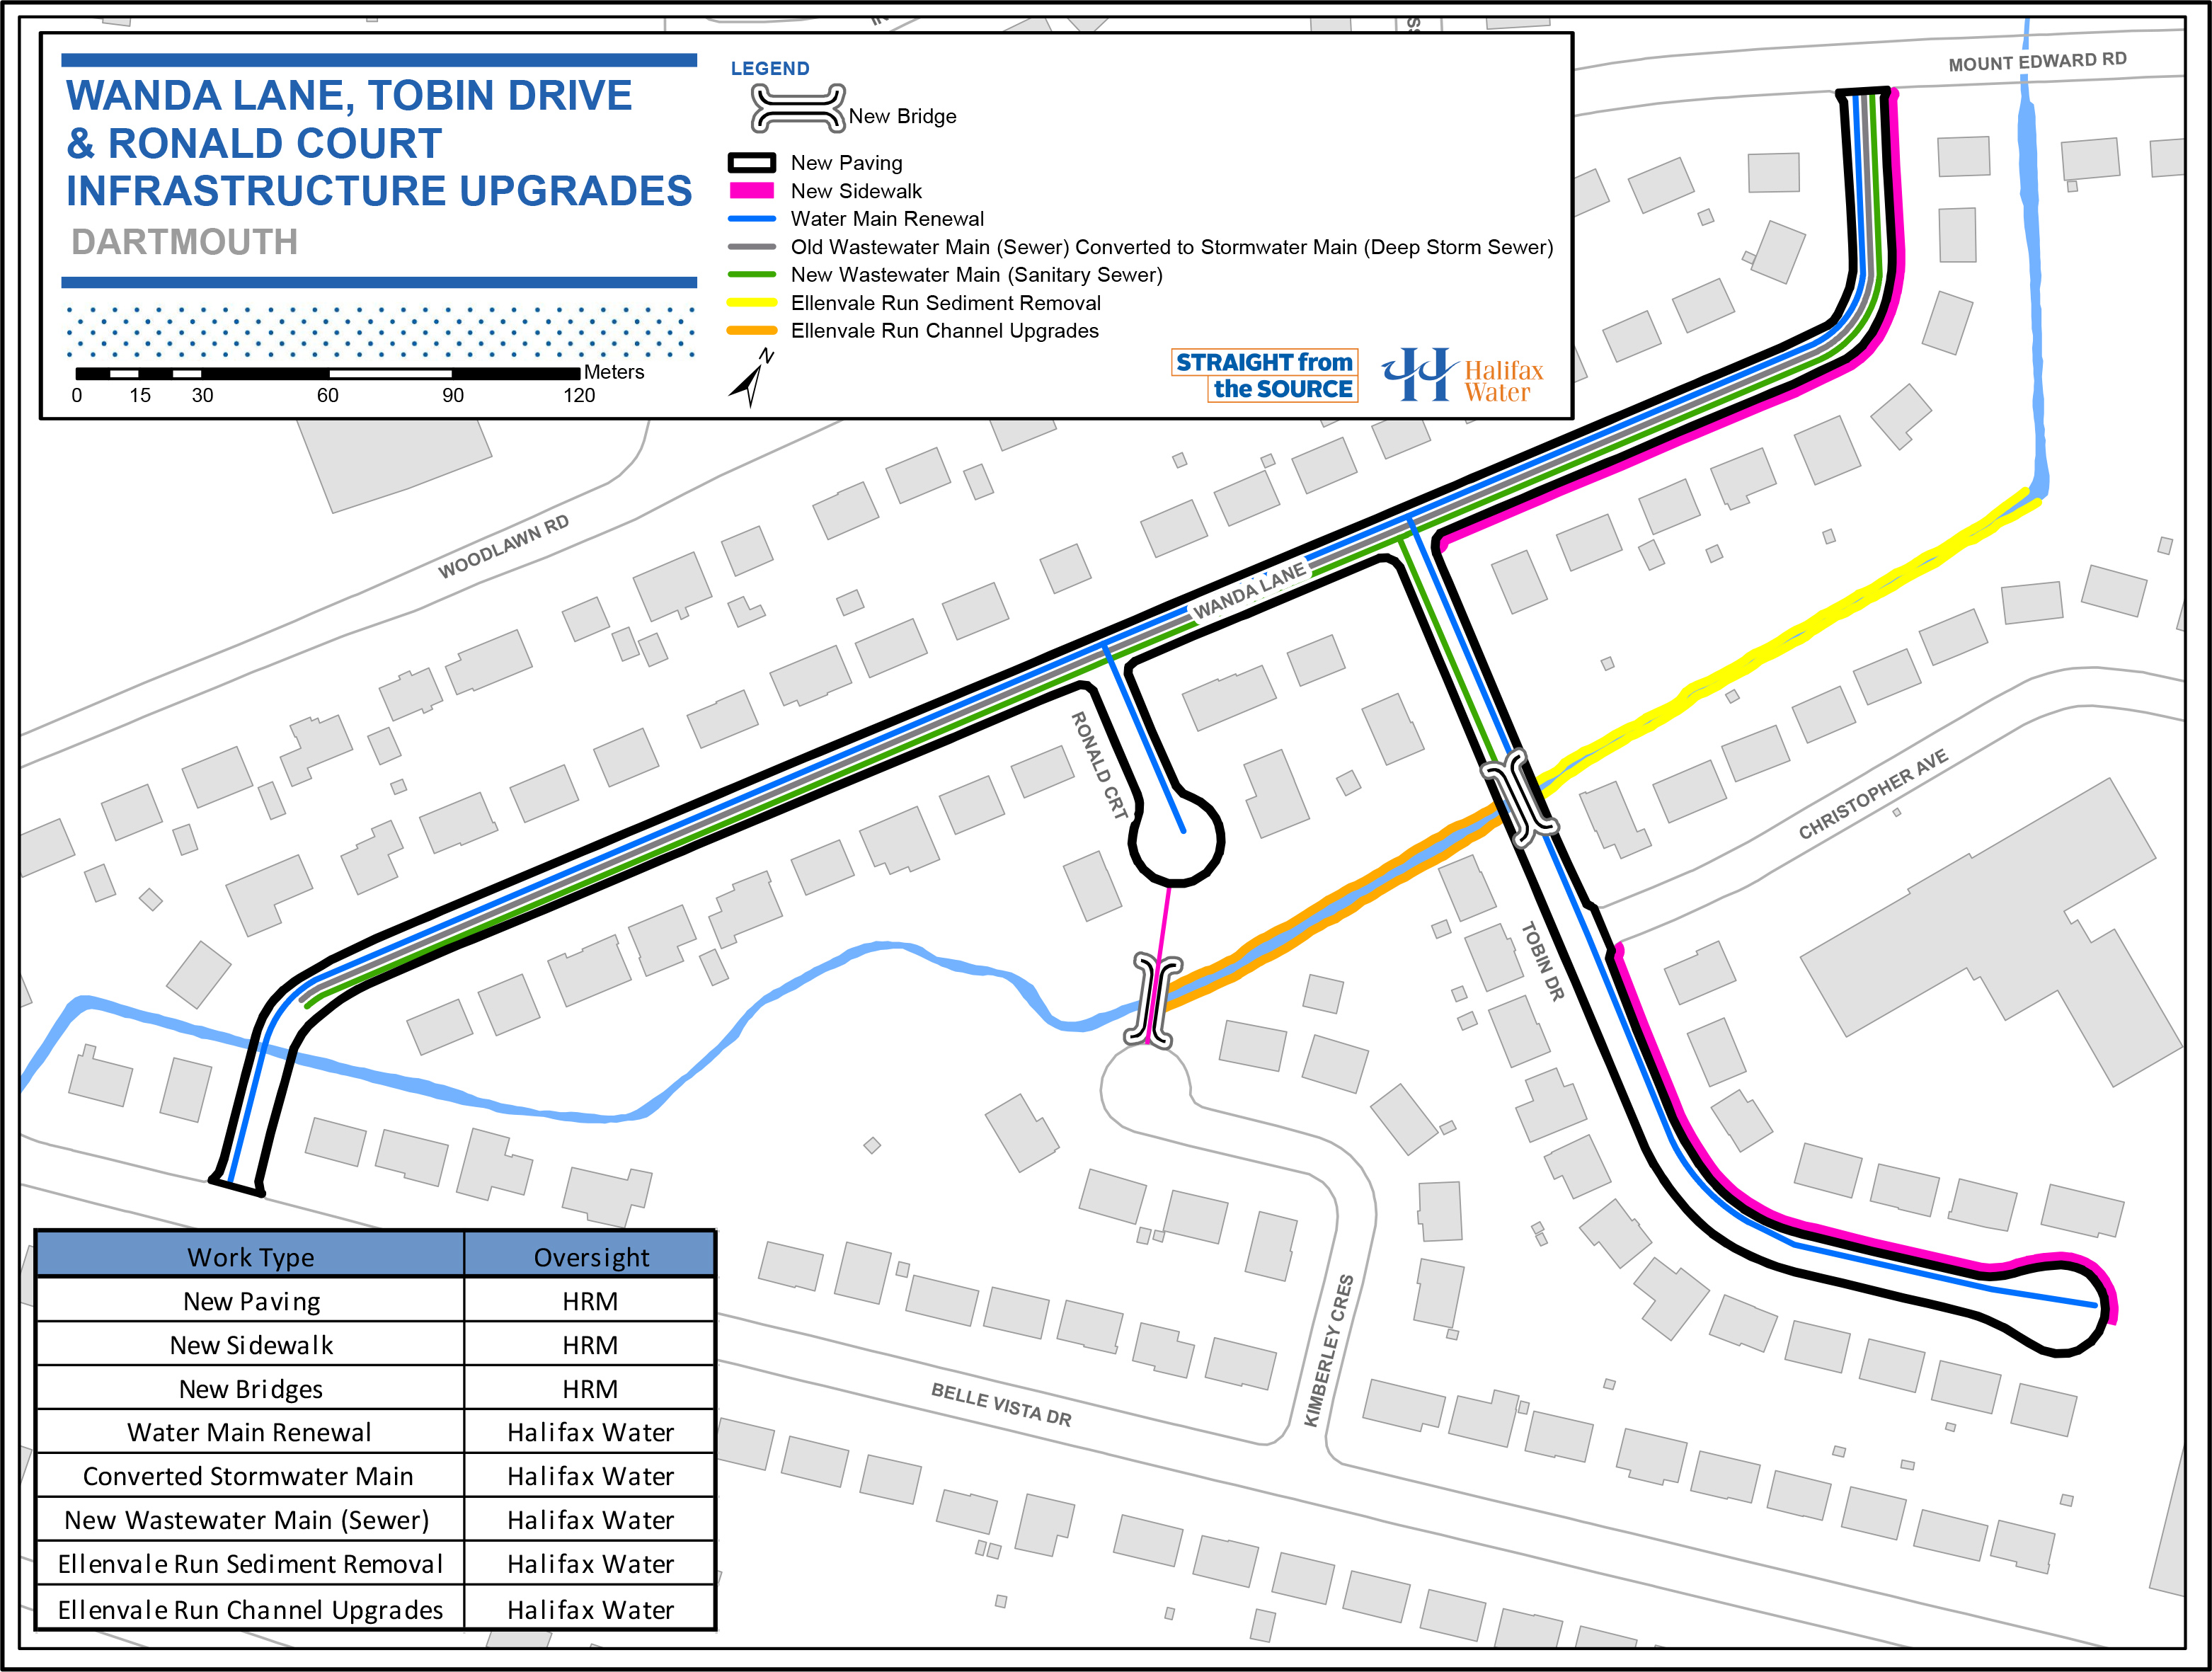 Map of the infrastrcuture upgrades planned for Wanda Lane, Tobin Drive, and Ronald Court